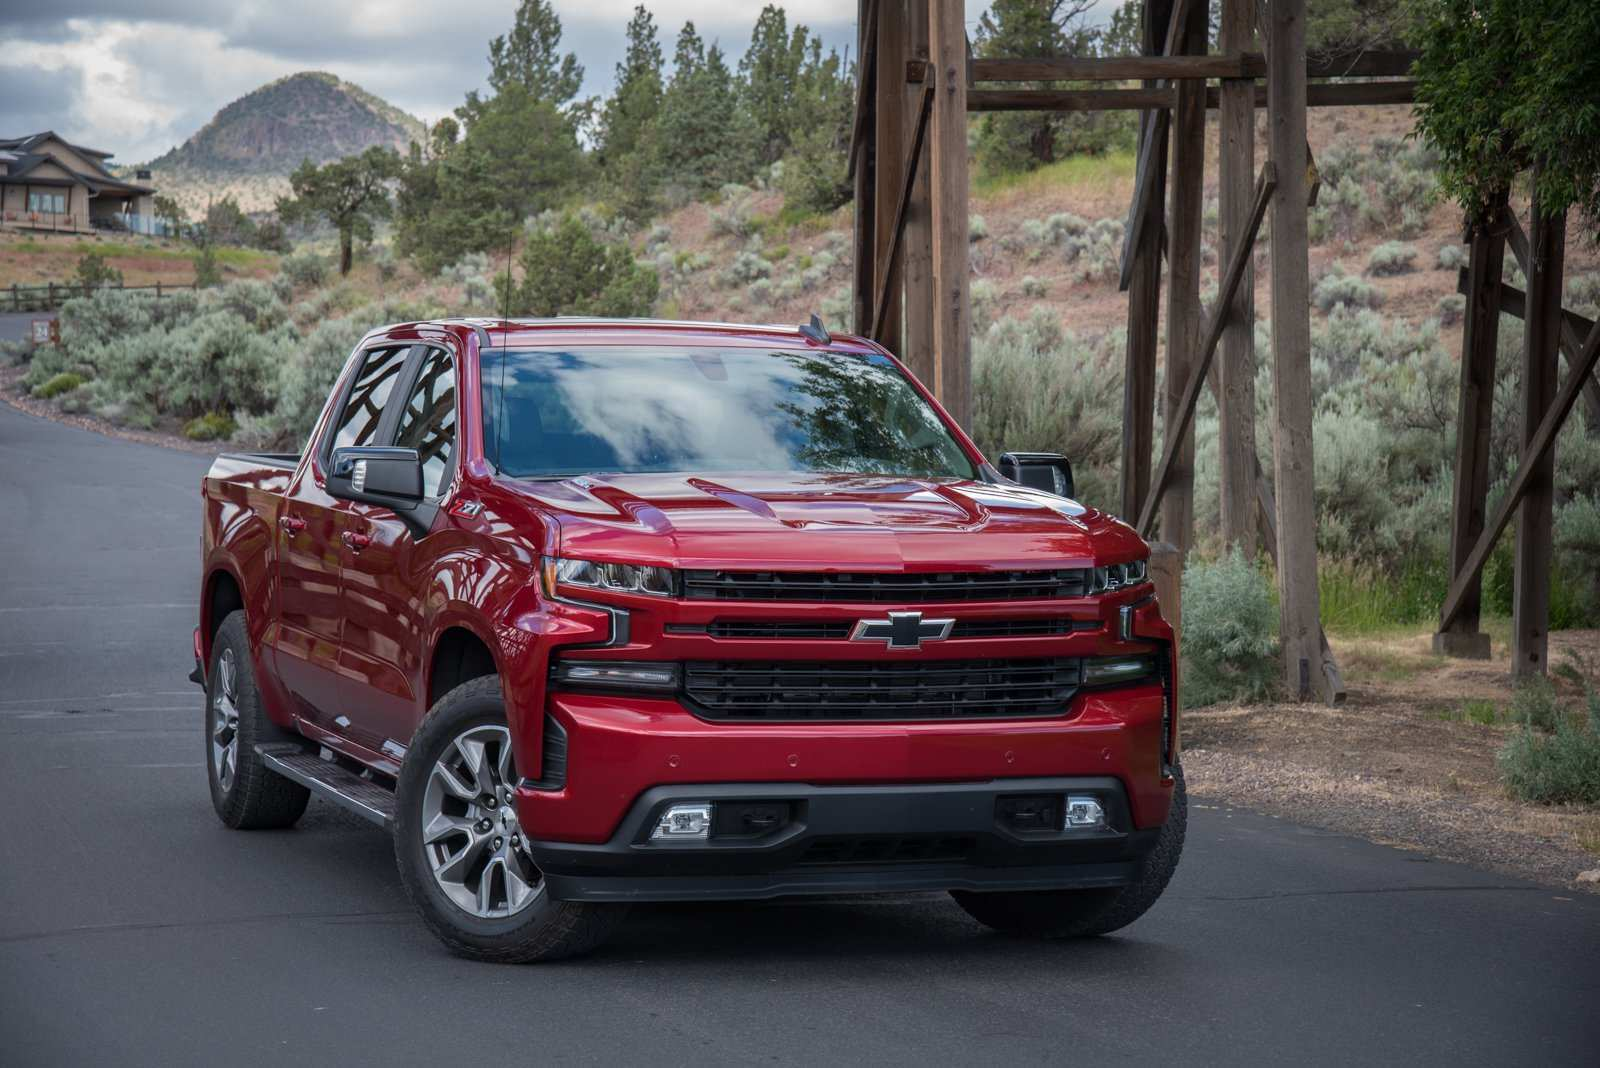 98 The Best Chevrolet Diesel 2020 Redesign And Review